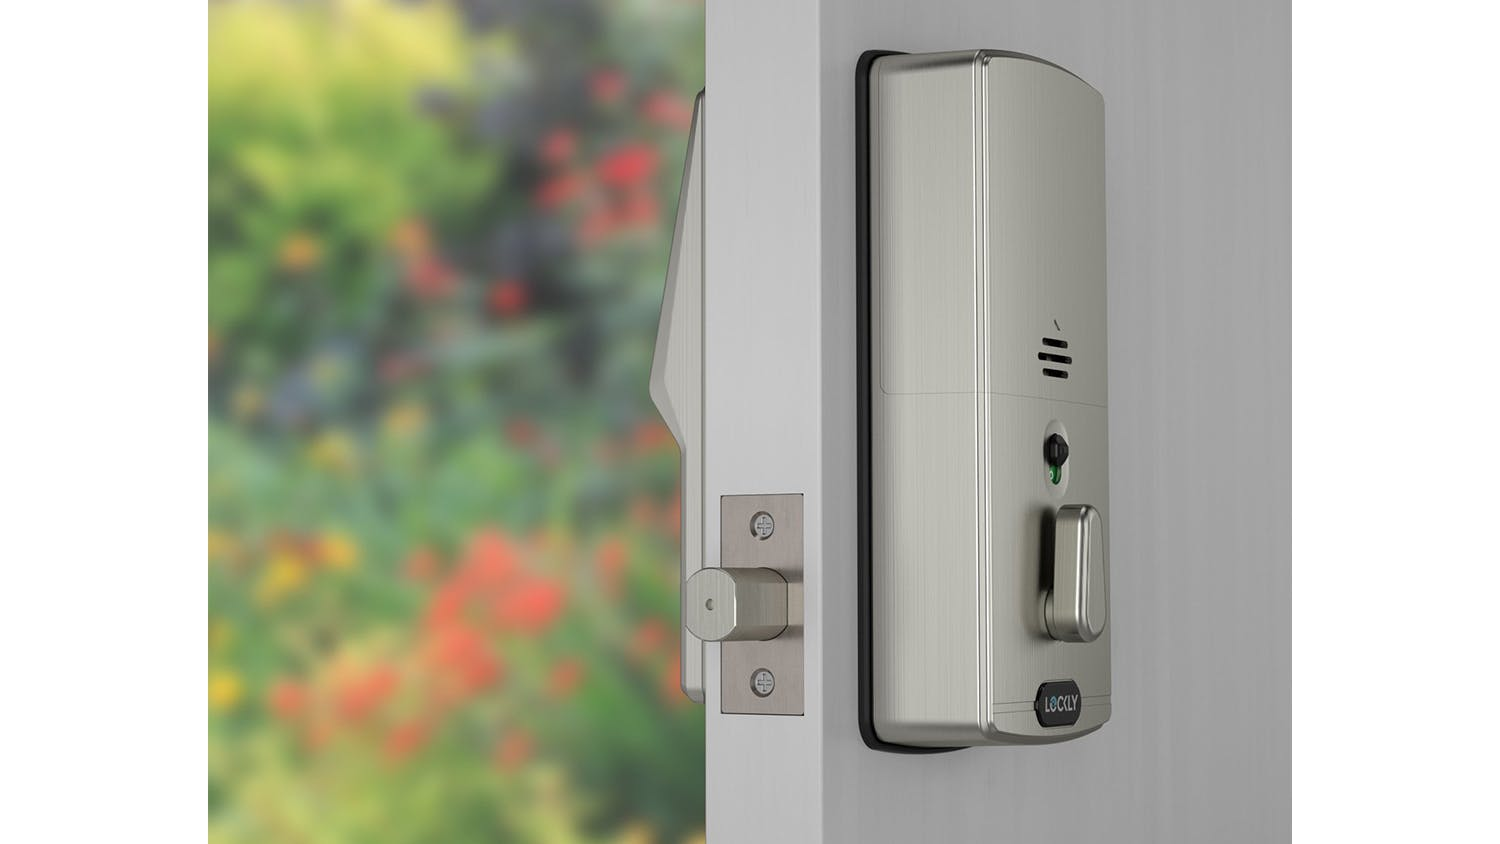 Lockly Secure Plus Deadbolt Door Lock with Fingerprint Access - Satin Nickel